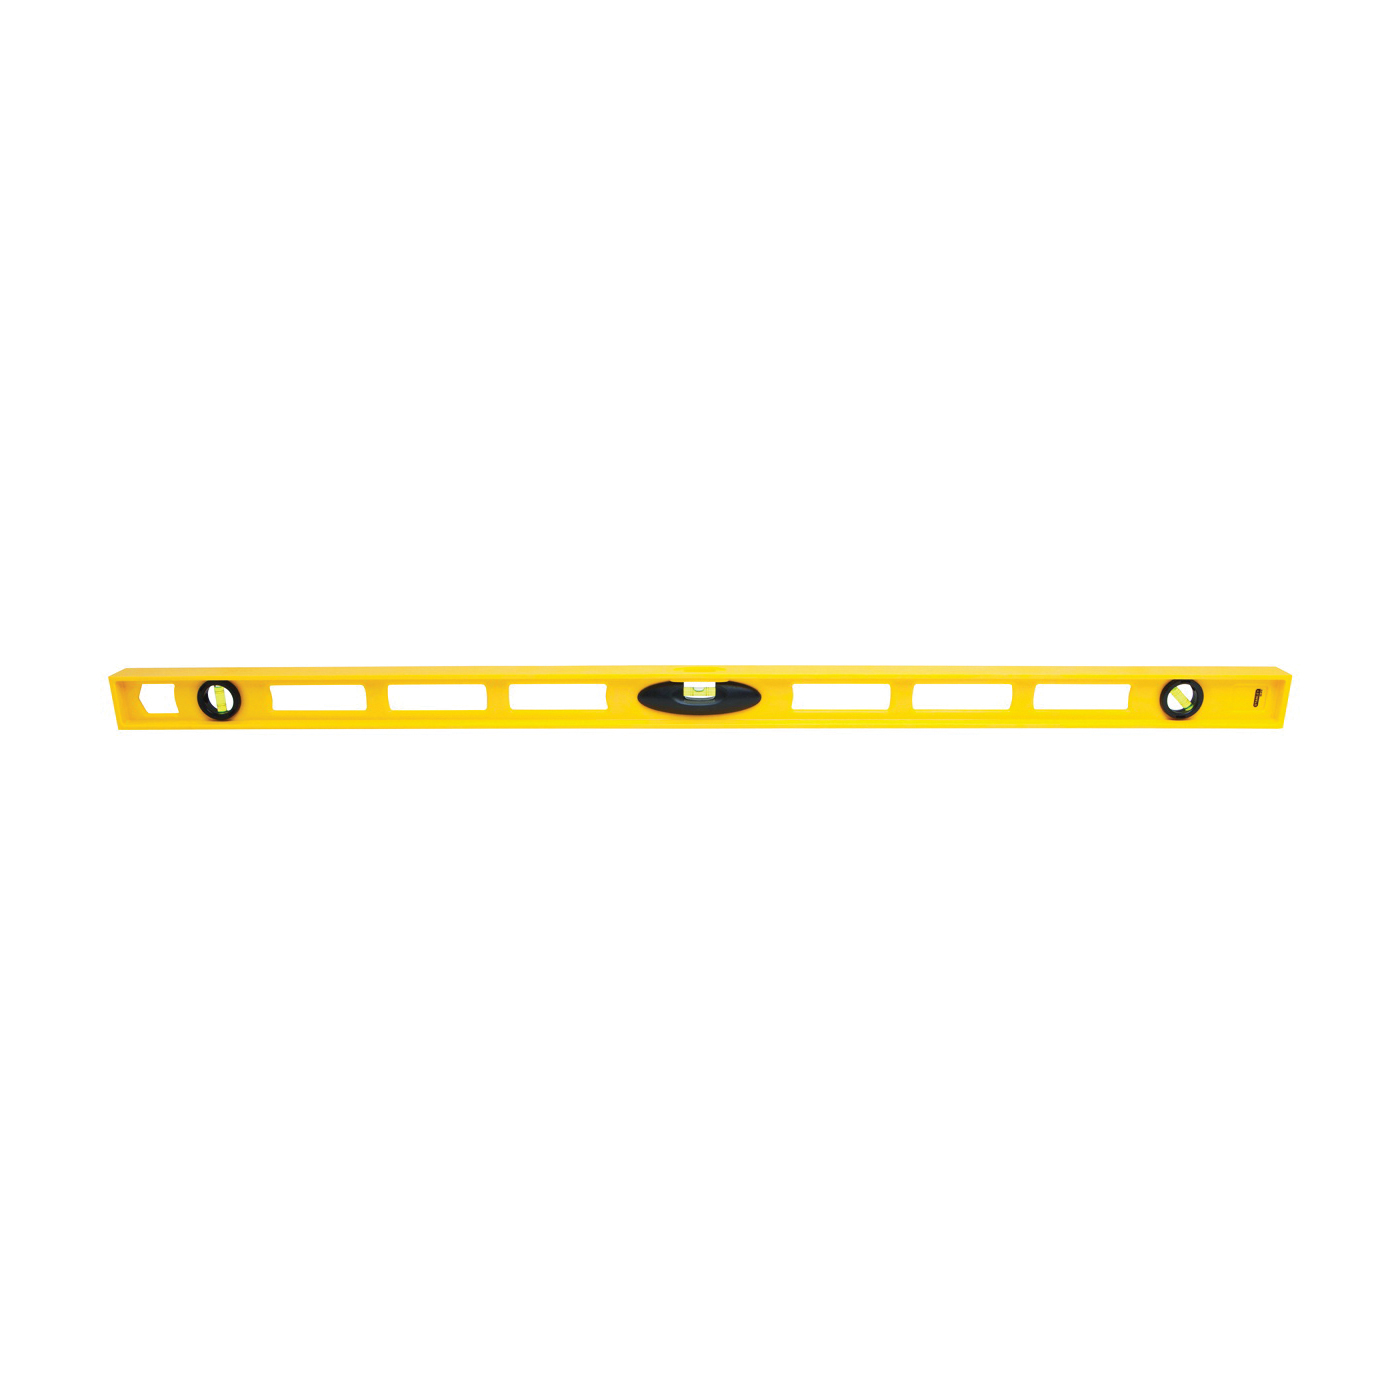 Picture of STANLEY 42-470 I-Beam Level, 48 in L, 3 -Vial, 2 -Hang Hole, Non-Magnetic, ABS, Yellow